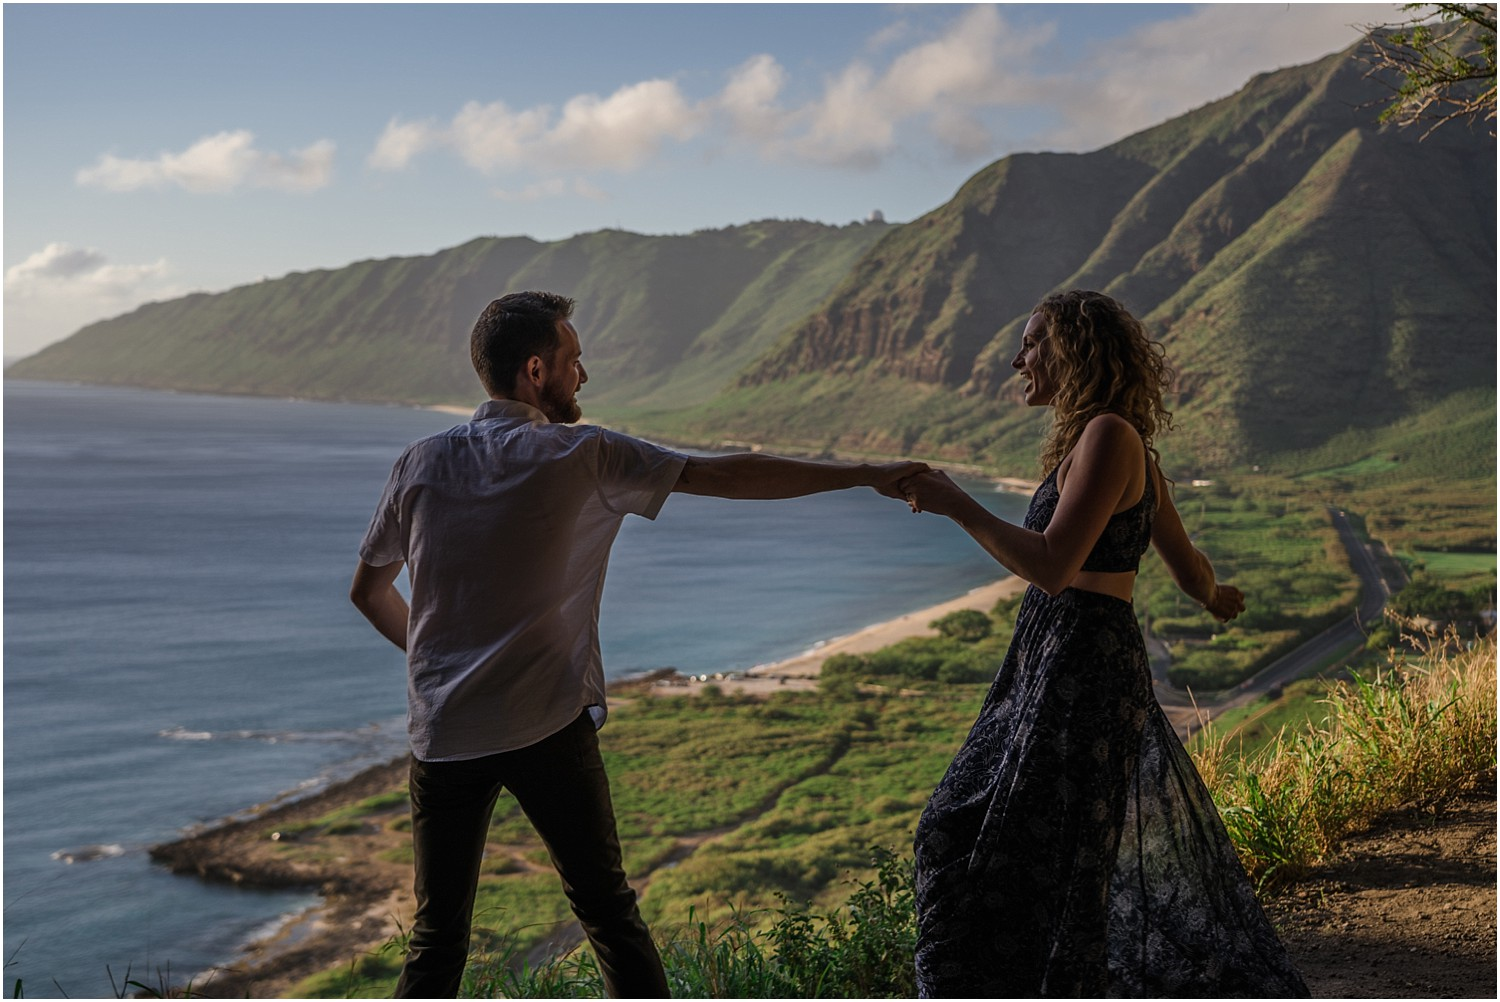 oahu-adventure-engagement-photography-session3.jpg